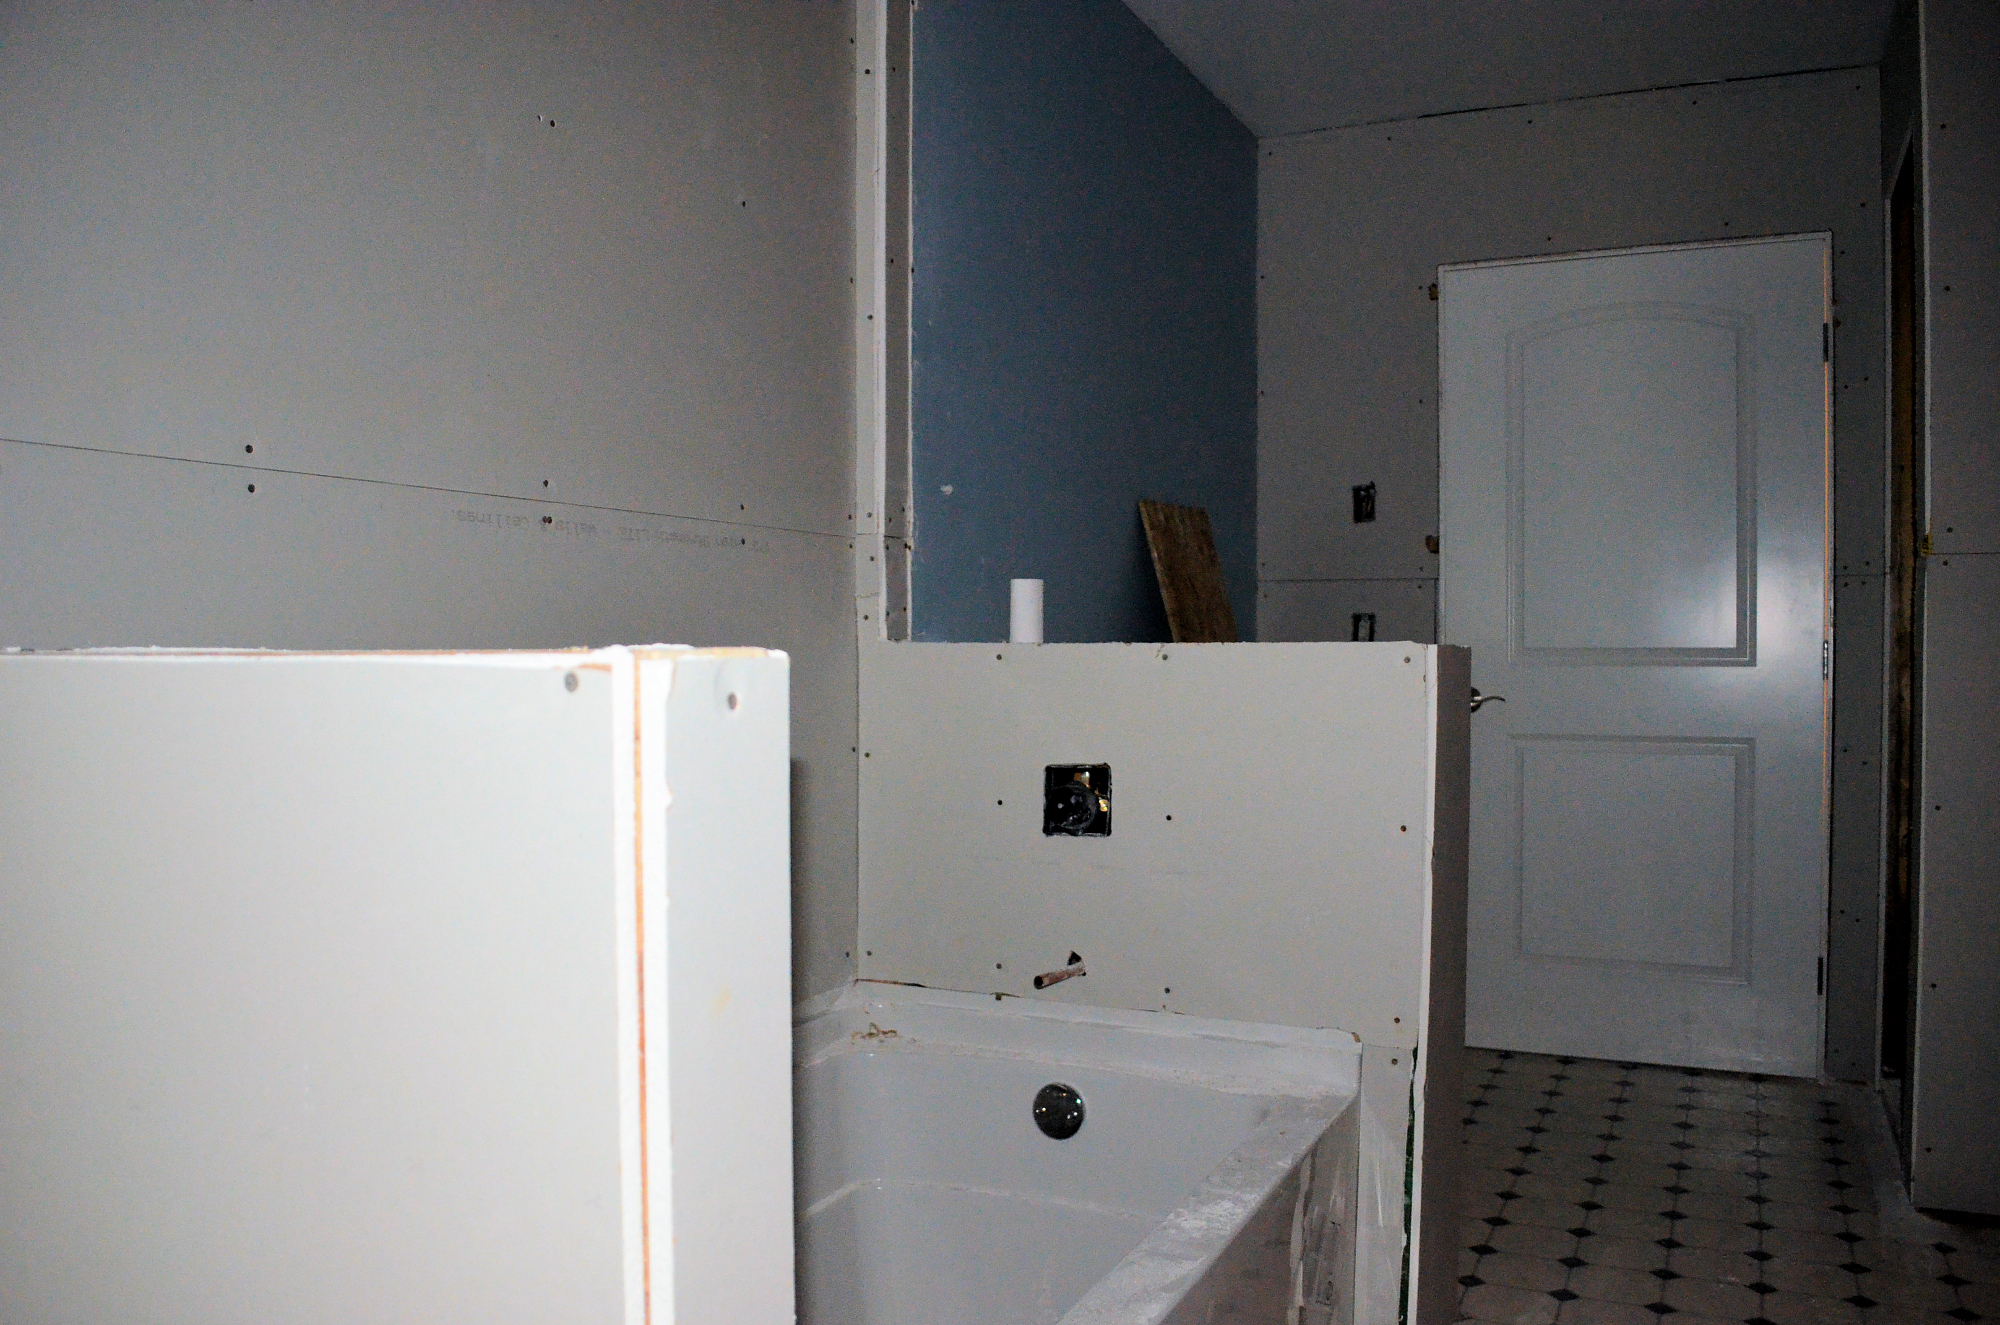 Jeff 39 s blog monday june 29 2015 week twelve What sheetrock to use in bathroom